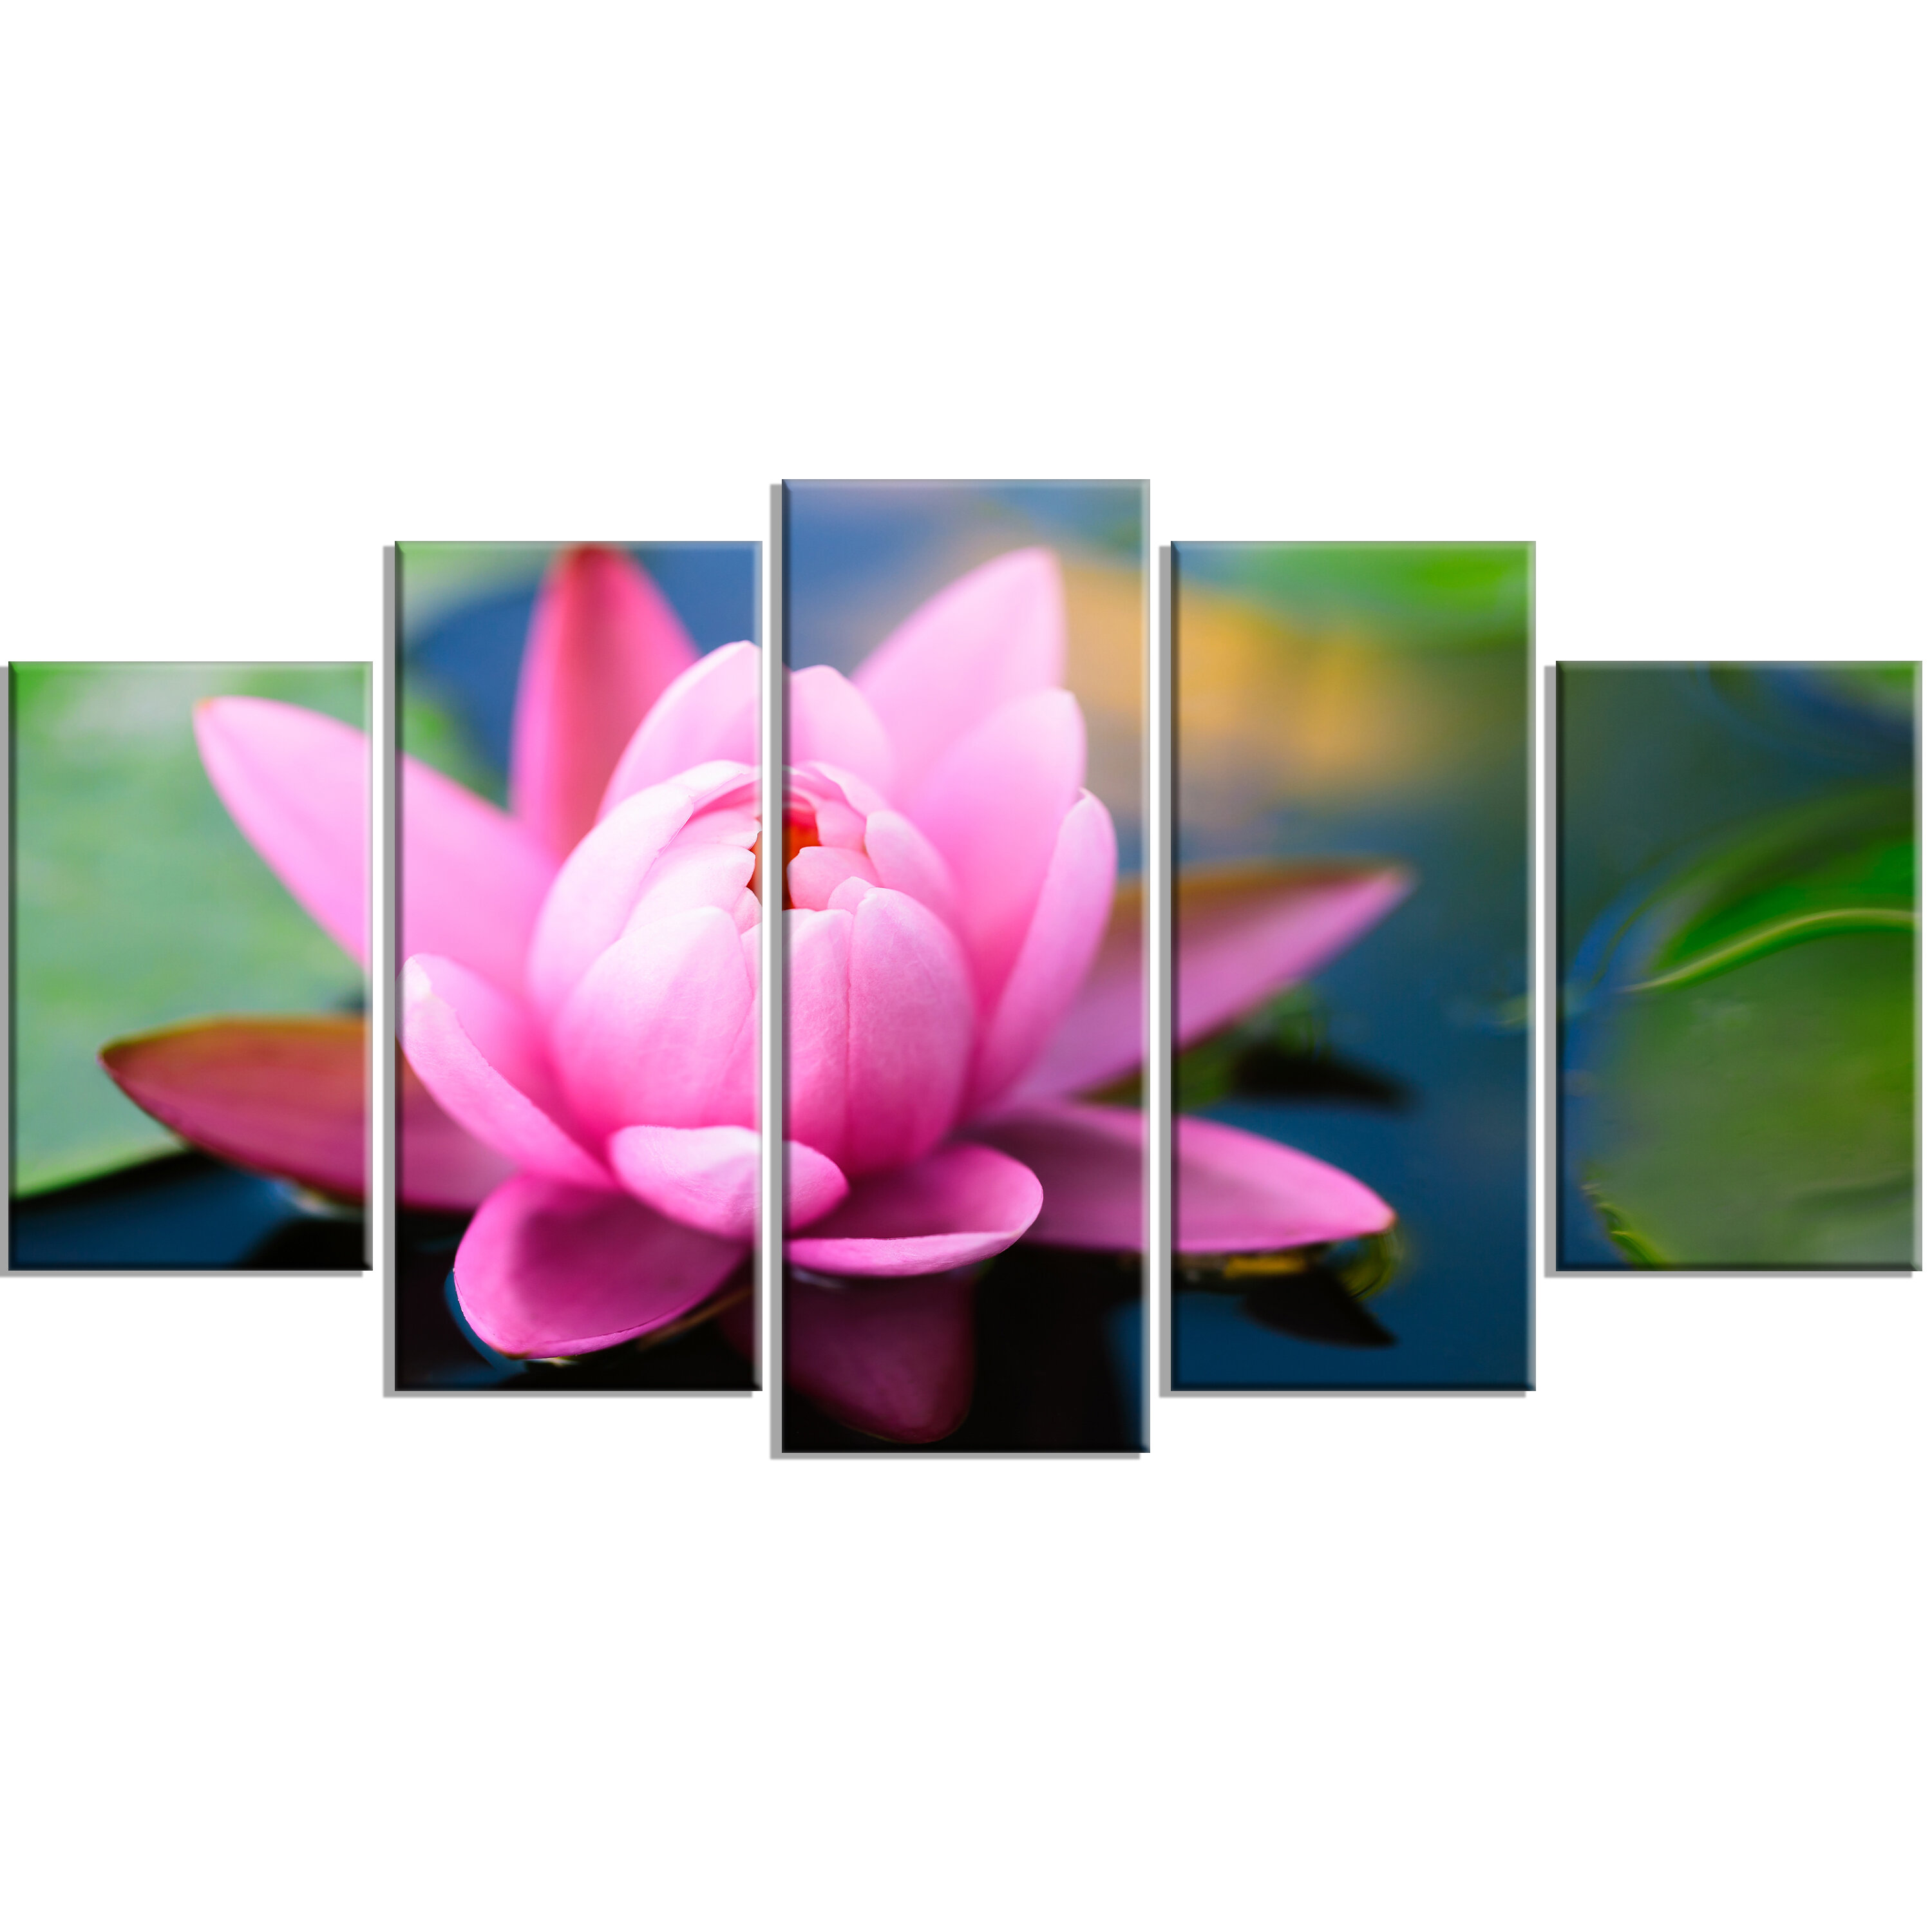 Designart Large Lotus Flower In The Pond 5 Piece Photographic